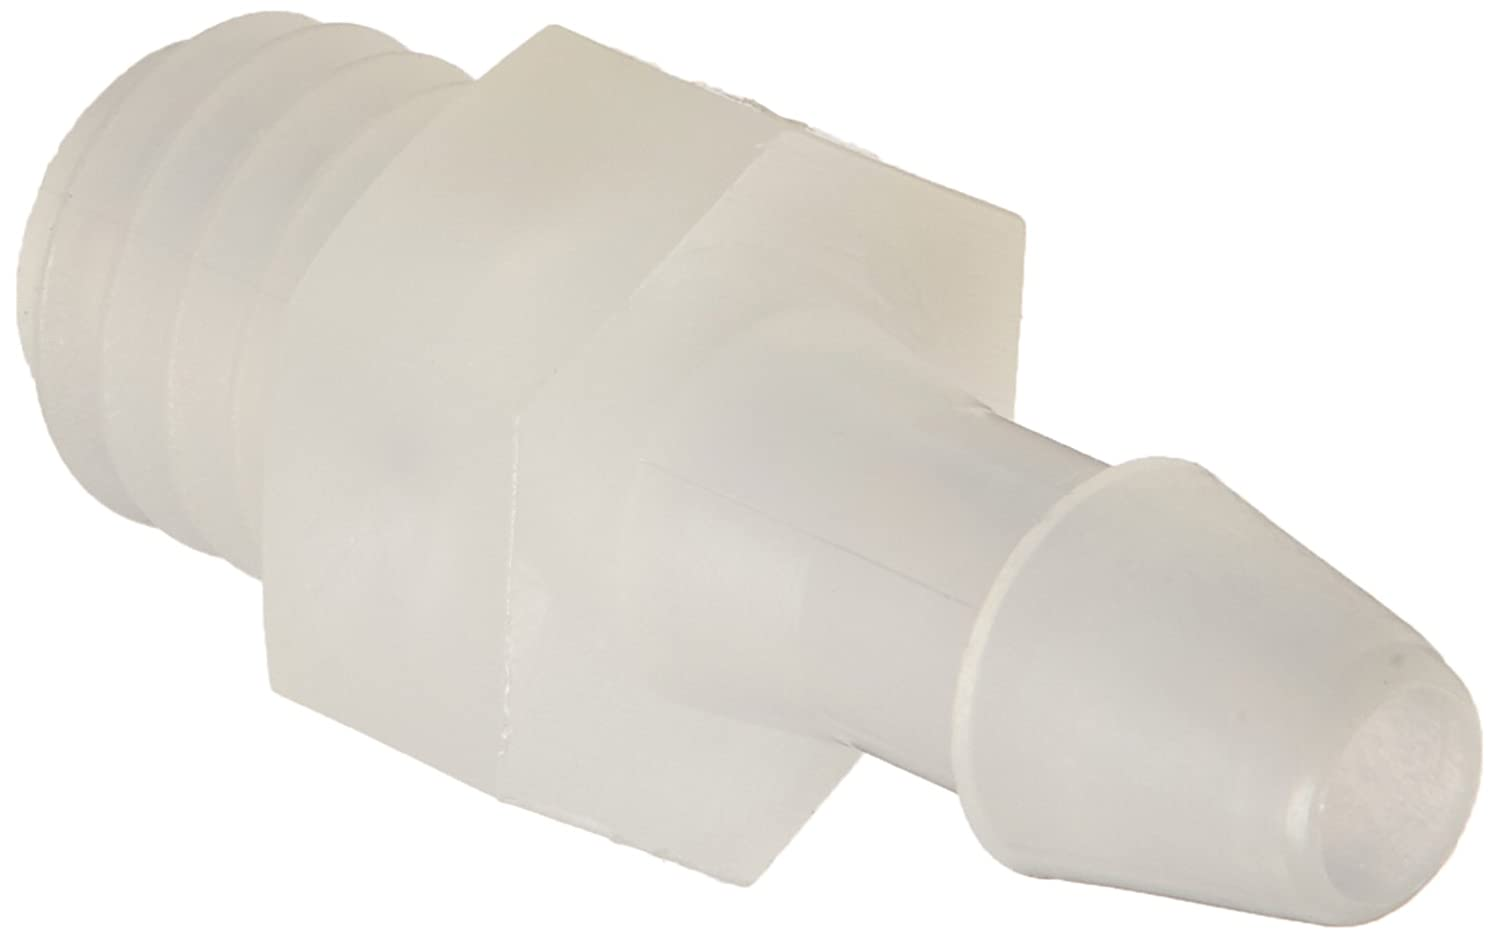 Metric Thread 1//8 Hose Barb Eldon James A6M-2-200NK Natural Kynar Barbed Adapter Fitting M6 x 1 Thread Pack of 10